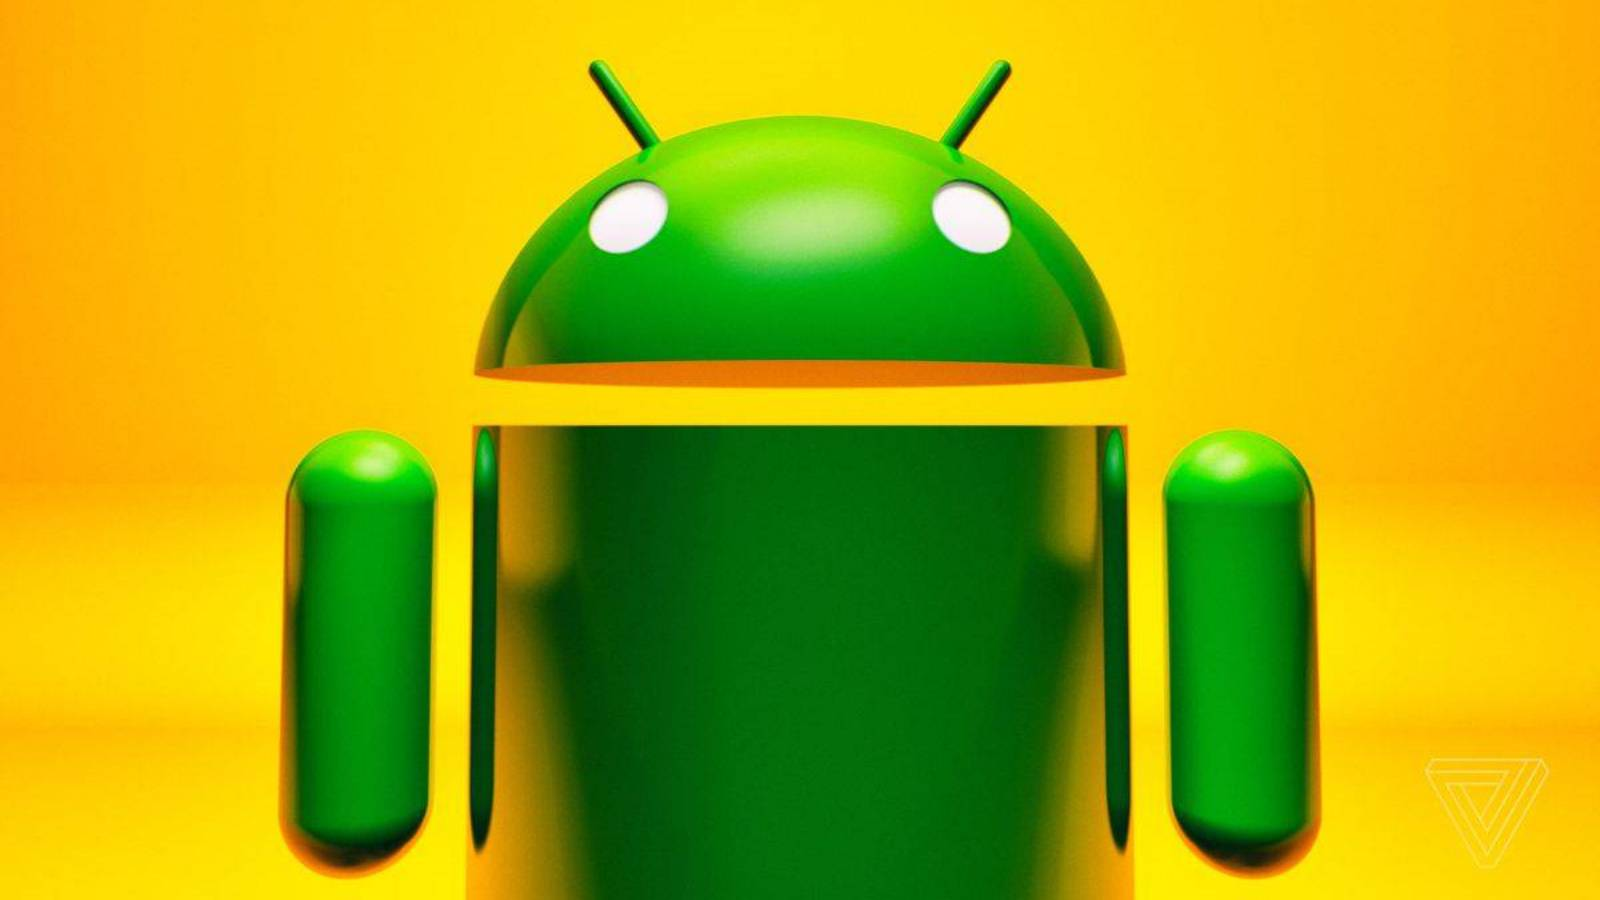 Android google messages reactii